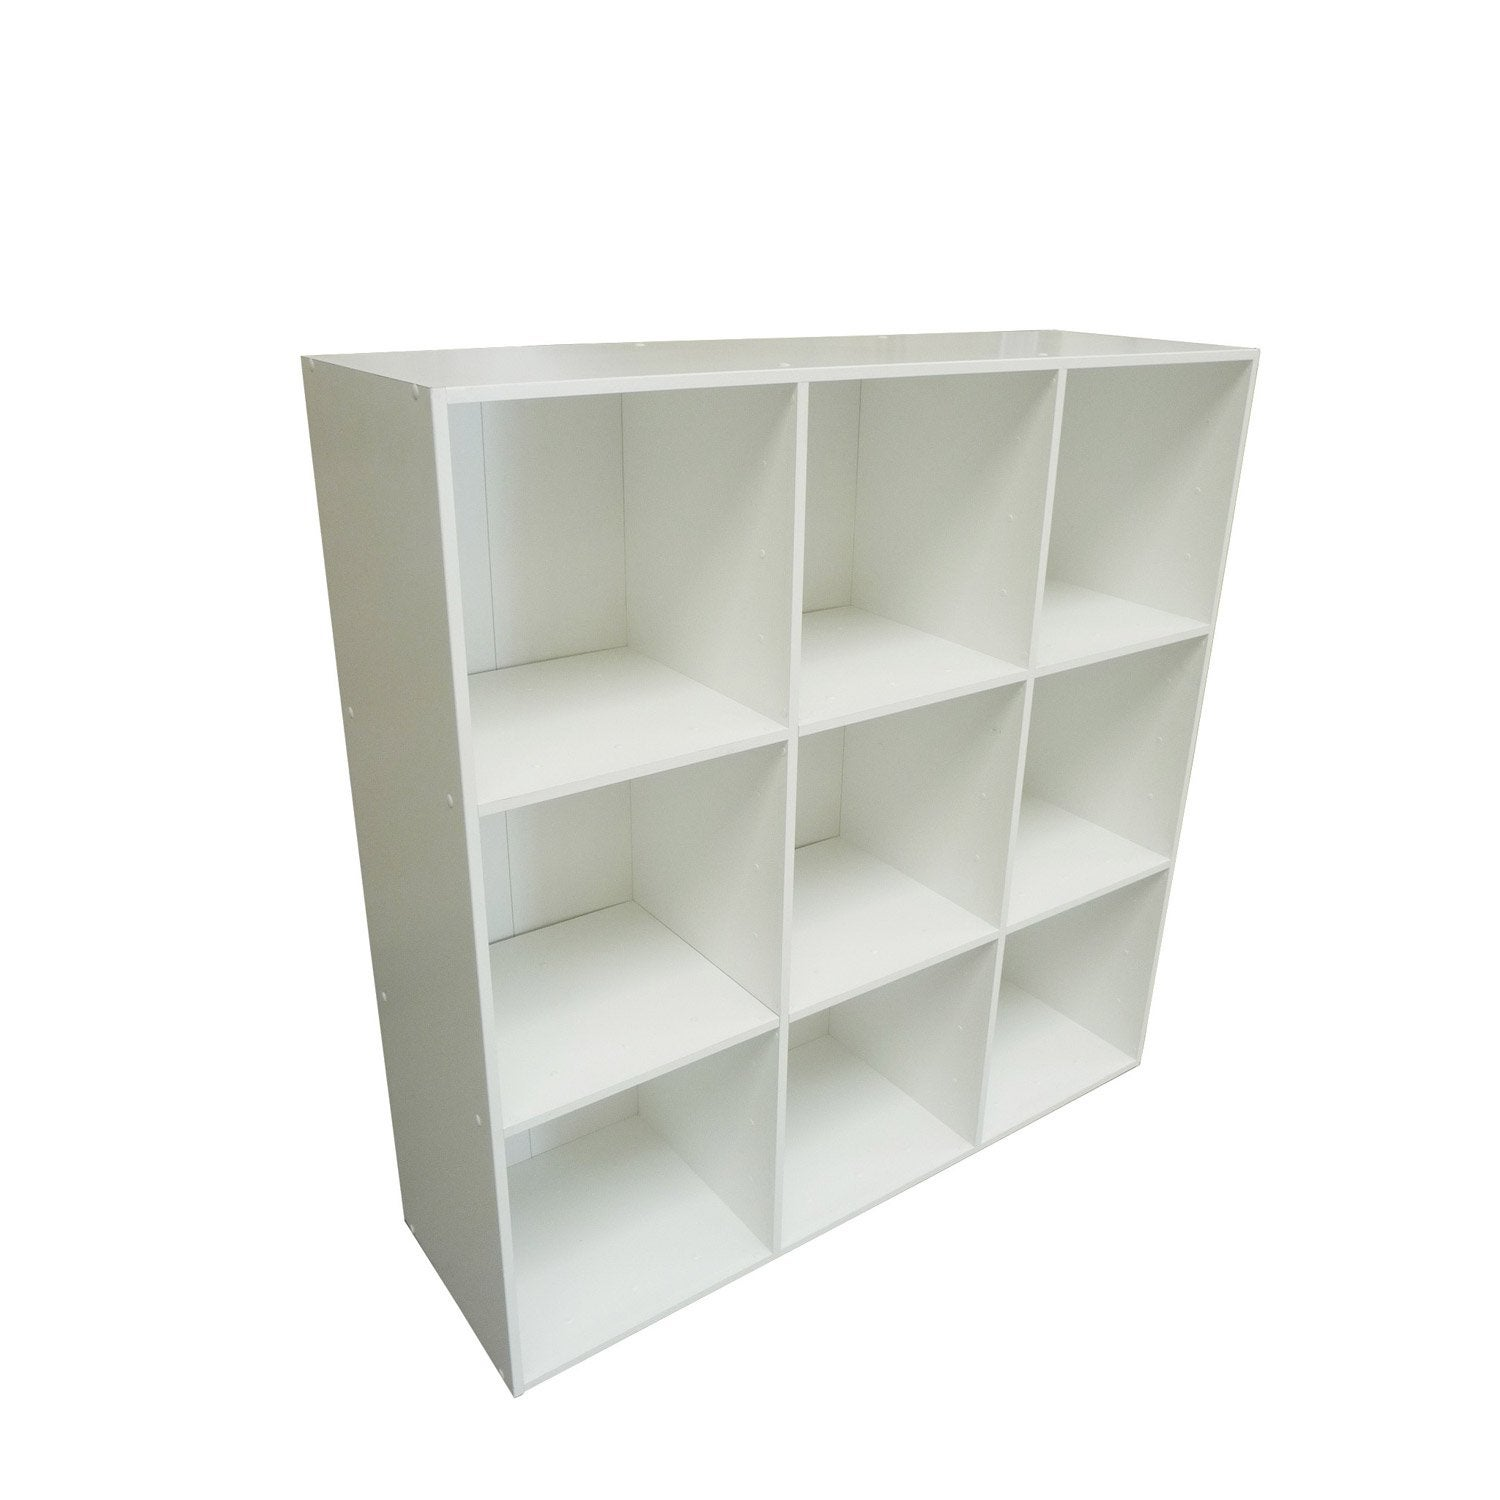 Etag re 9 cases multikaz blanc x x for Etagere salle de bain conforama